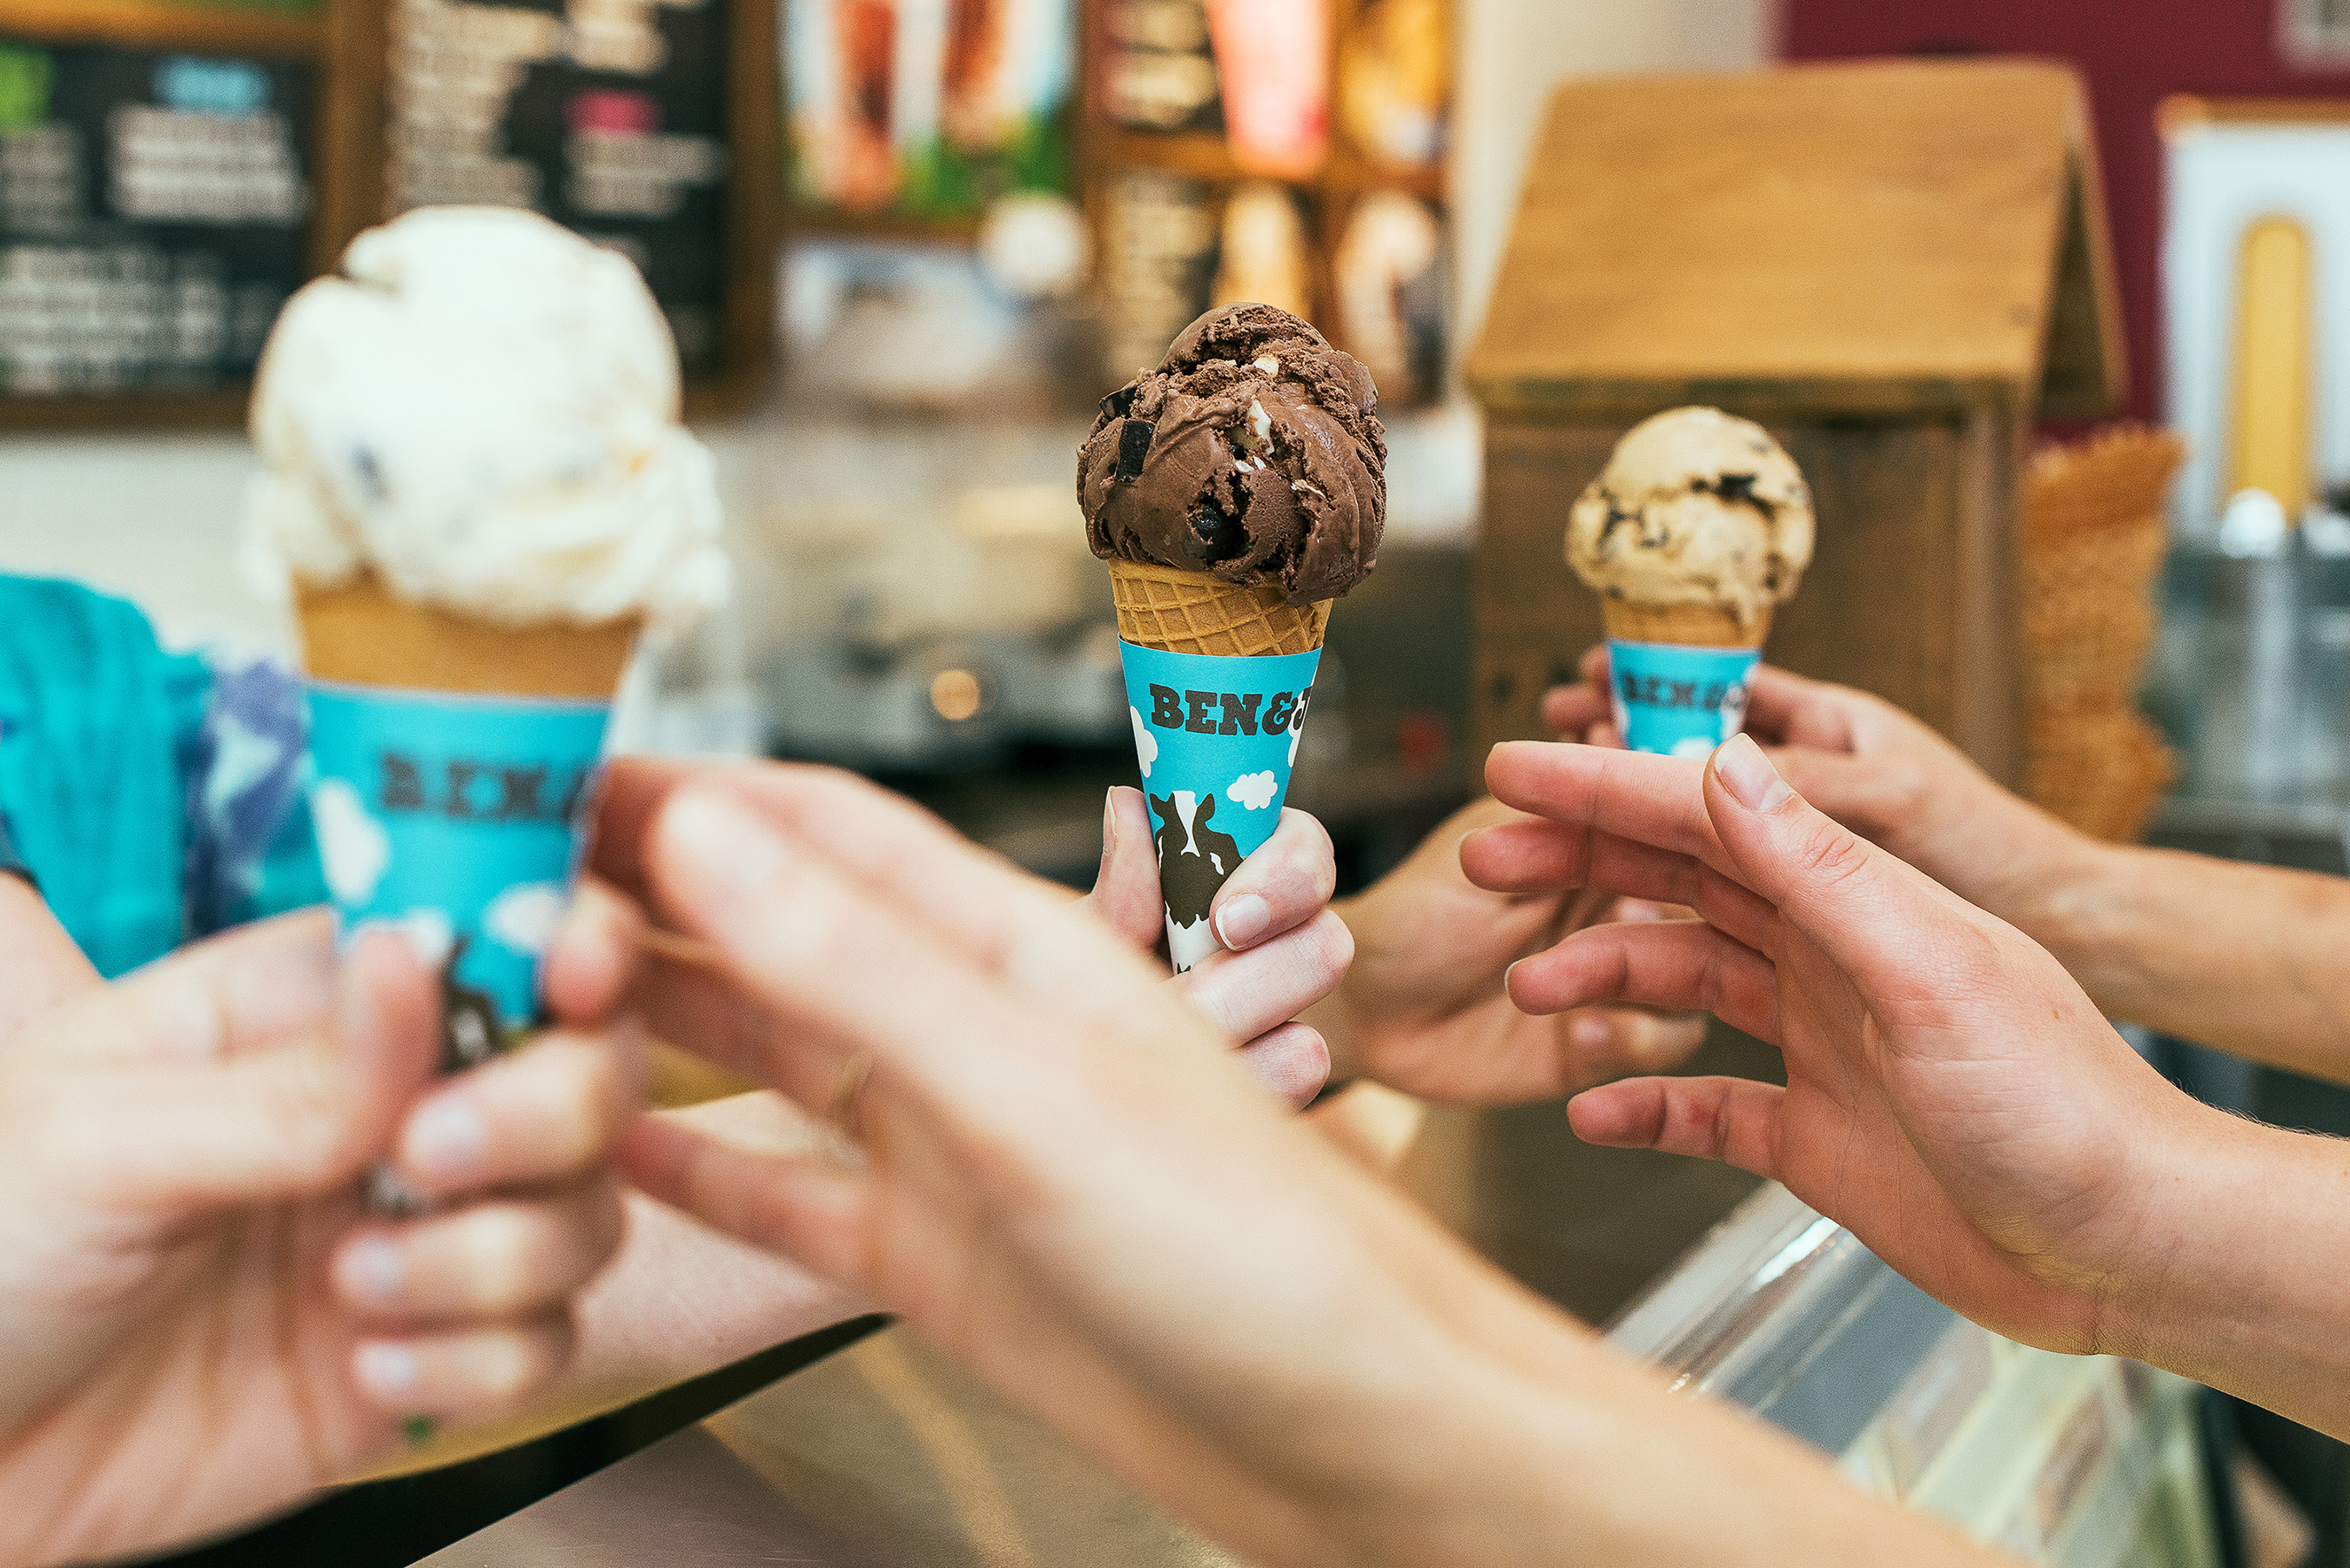 Free Cone Day is coming April 12th!